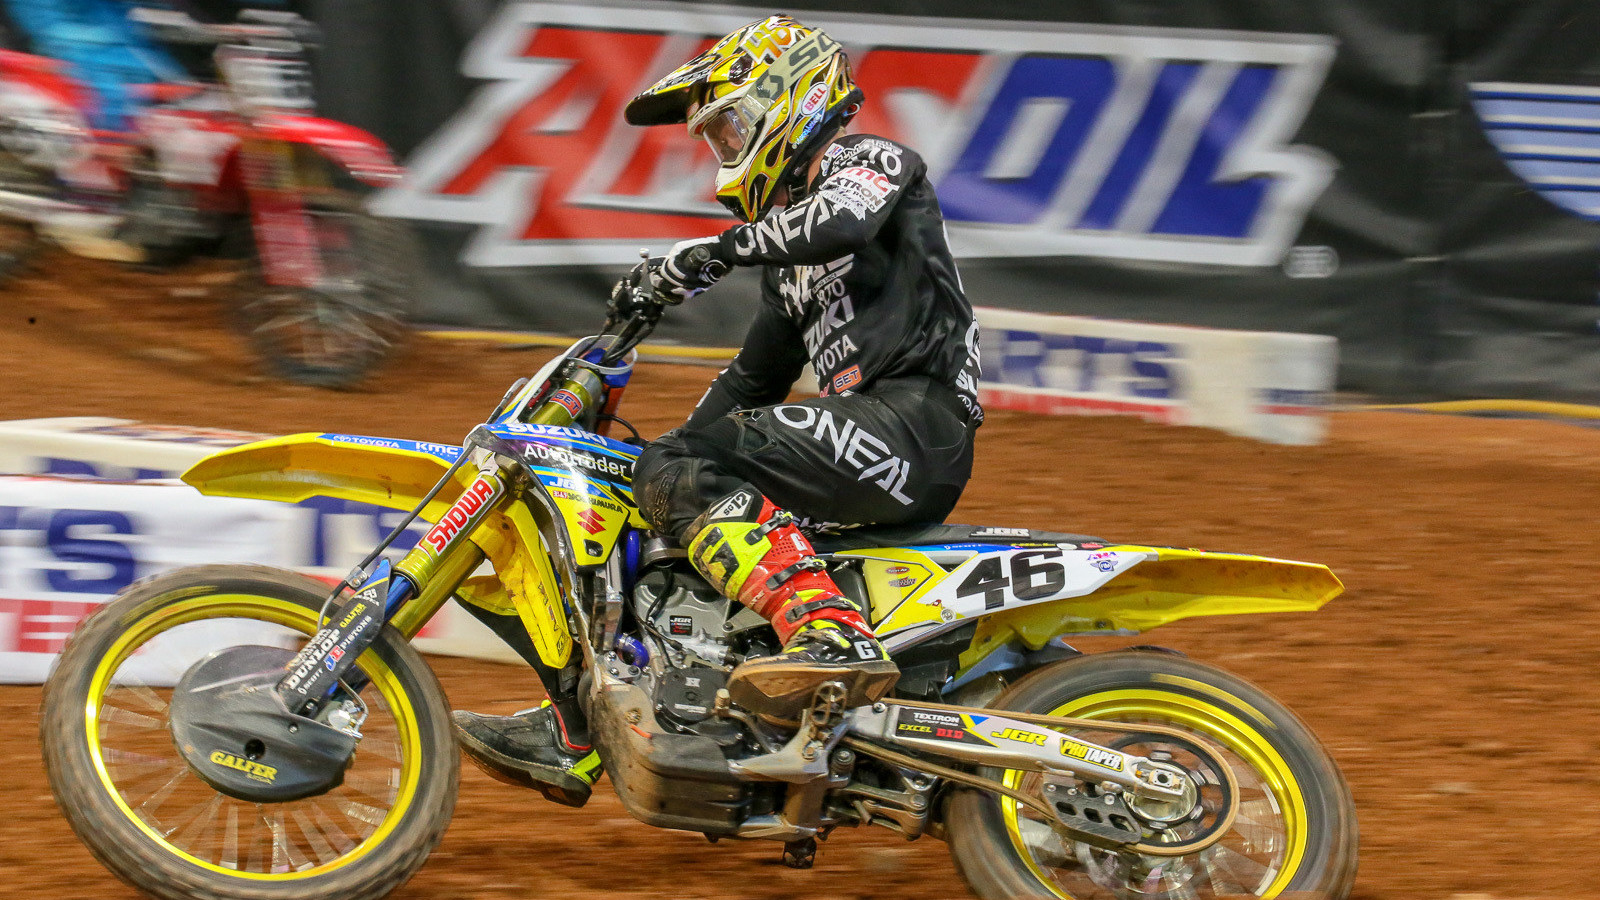 Justin Hill to Race Select 450 Nationals for Autotrader/Yoshimura/Suzuki Factory Racing Team - Jimmy Decotis Returns to the 250 Class